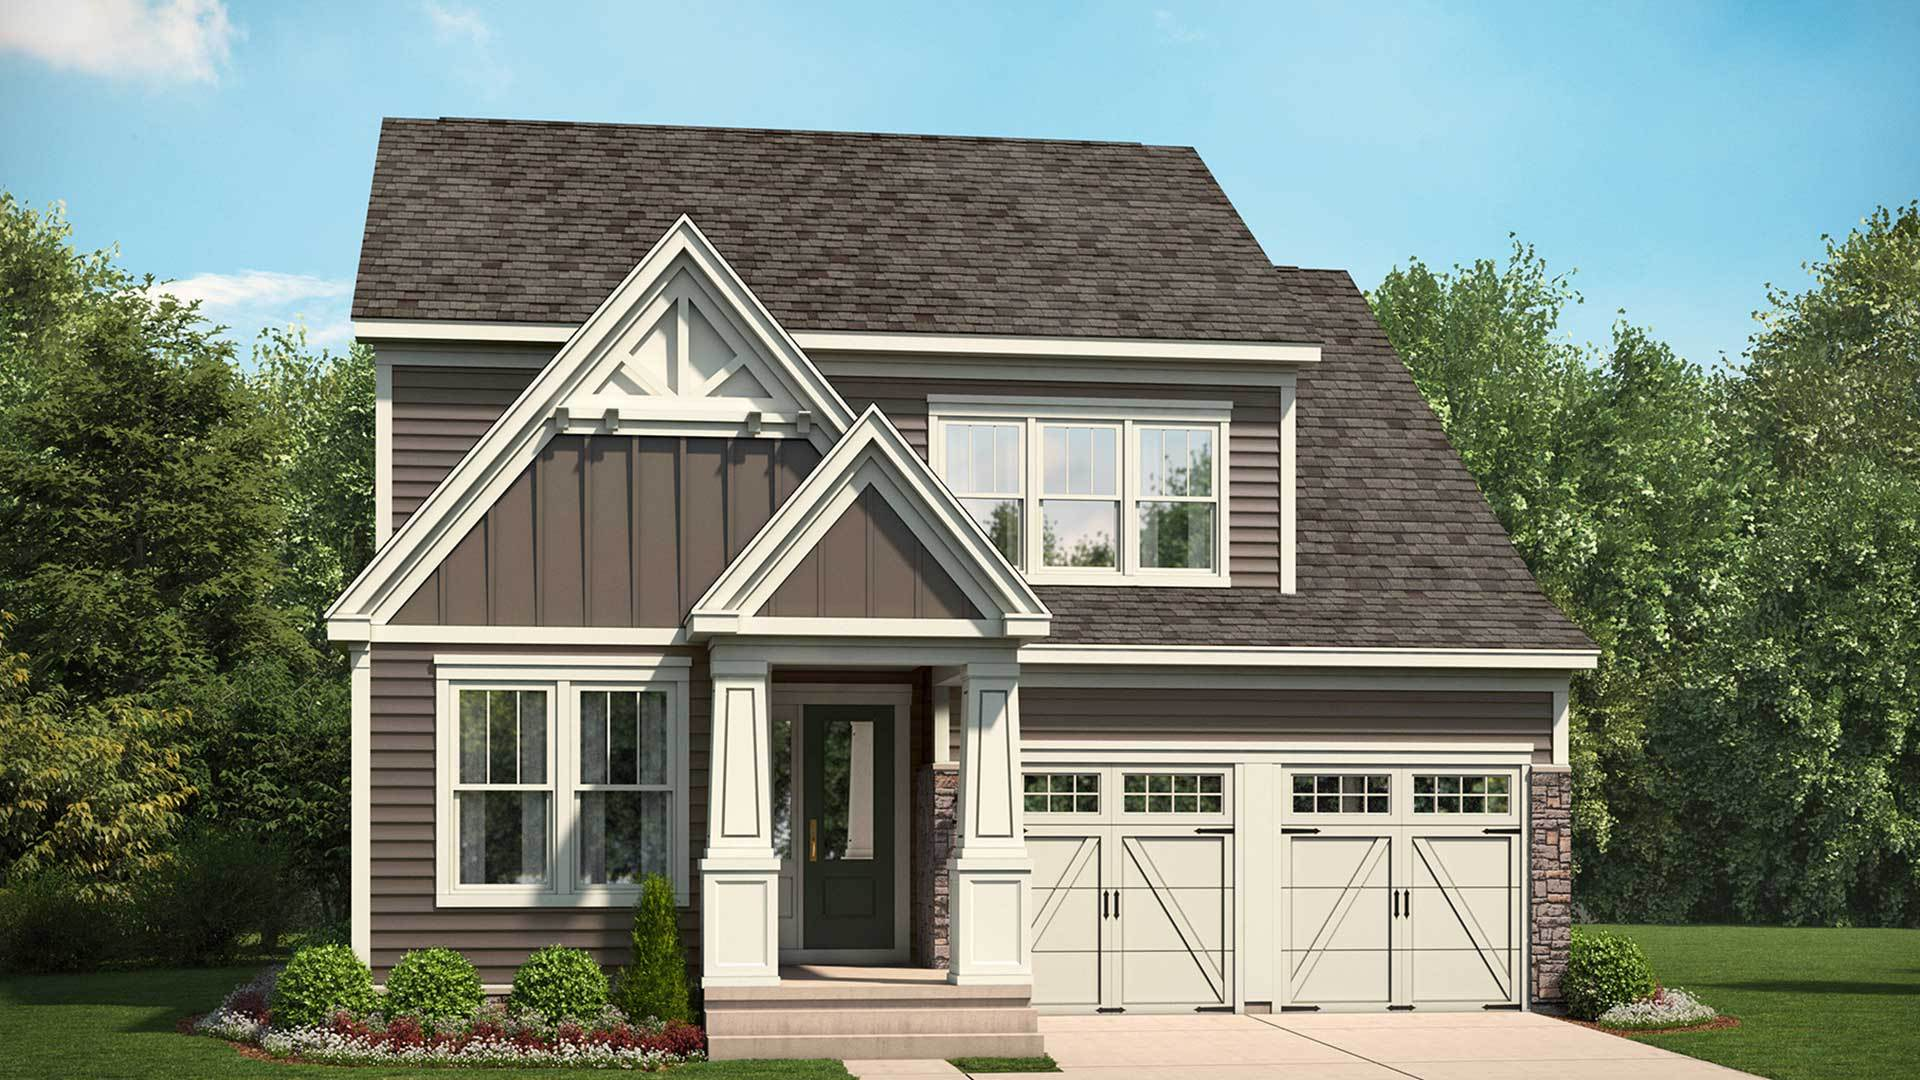 Stanley martin homes belvedere the waverly 1361355 for Modern homes for sale in virginia